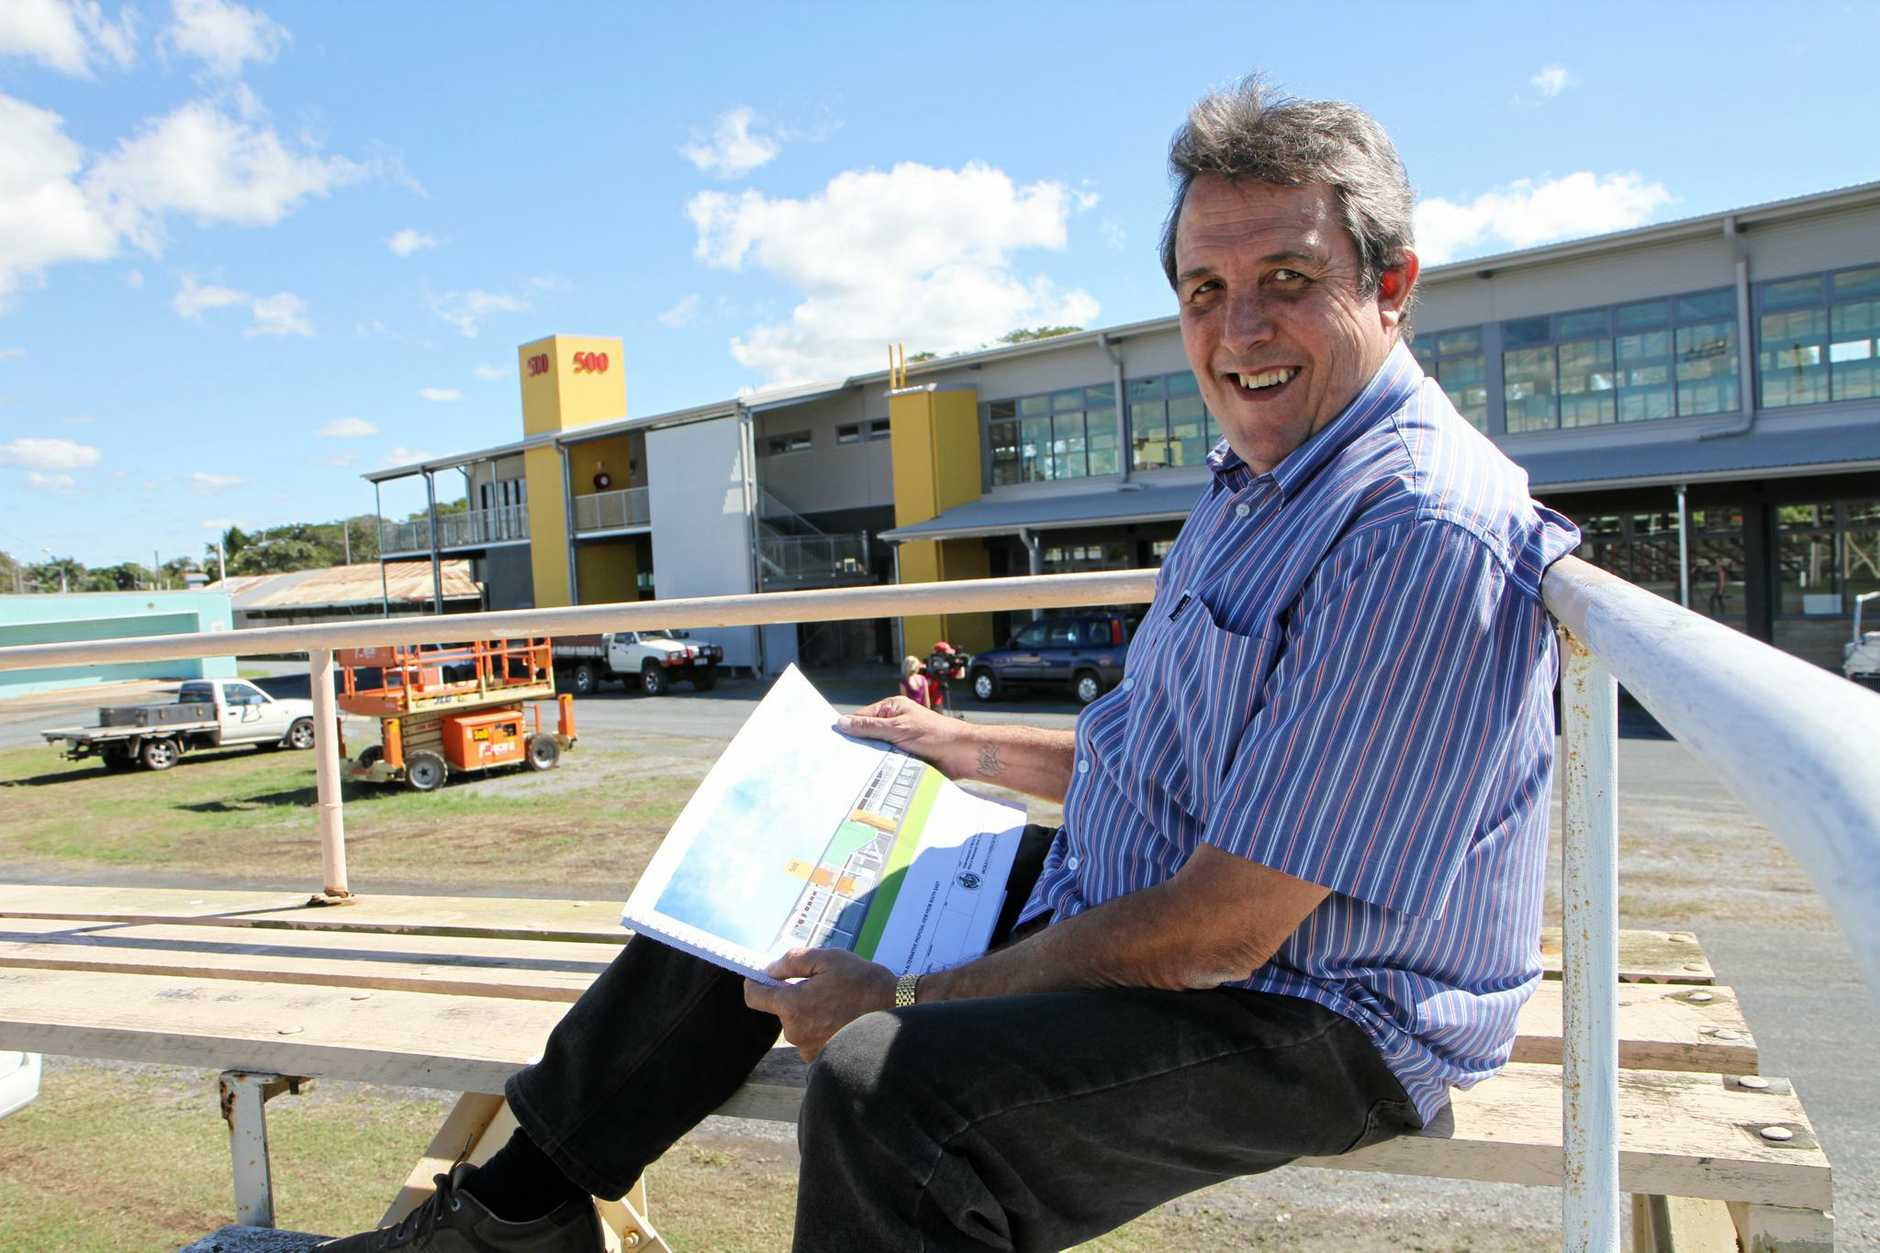 Steve Gavioli looks over the plans of the almost completed 500 Pavillion at the Mackay Showgrounds. Photo: Lauren Reed / Daily Mercury